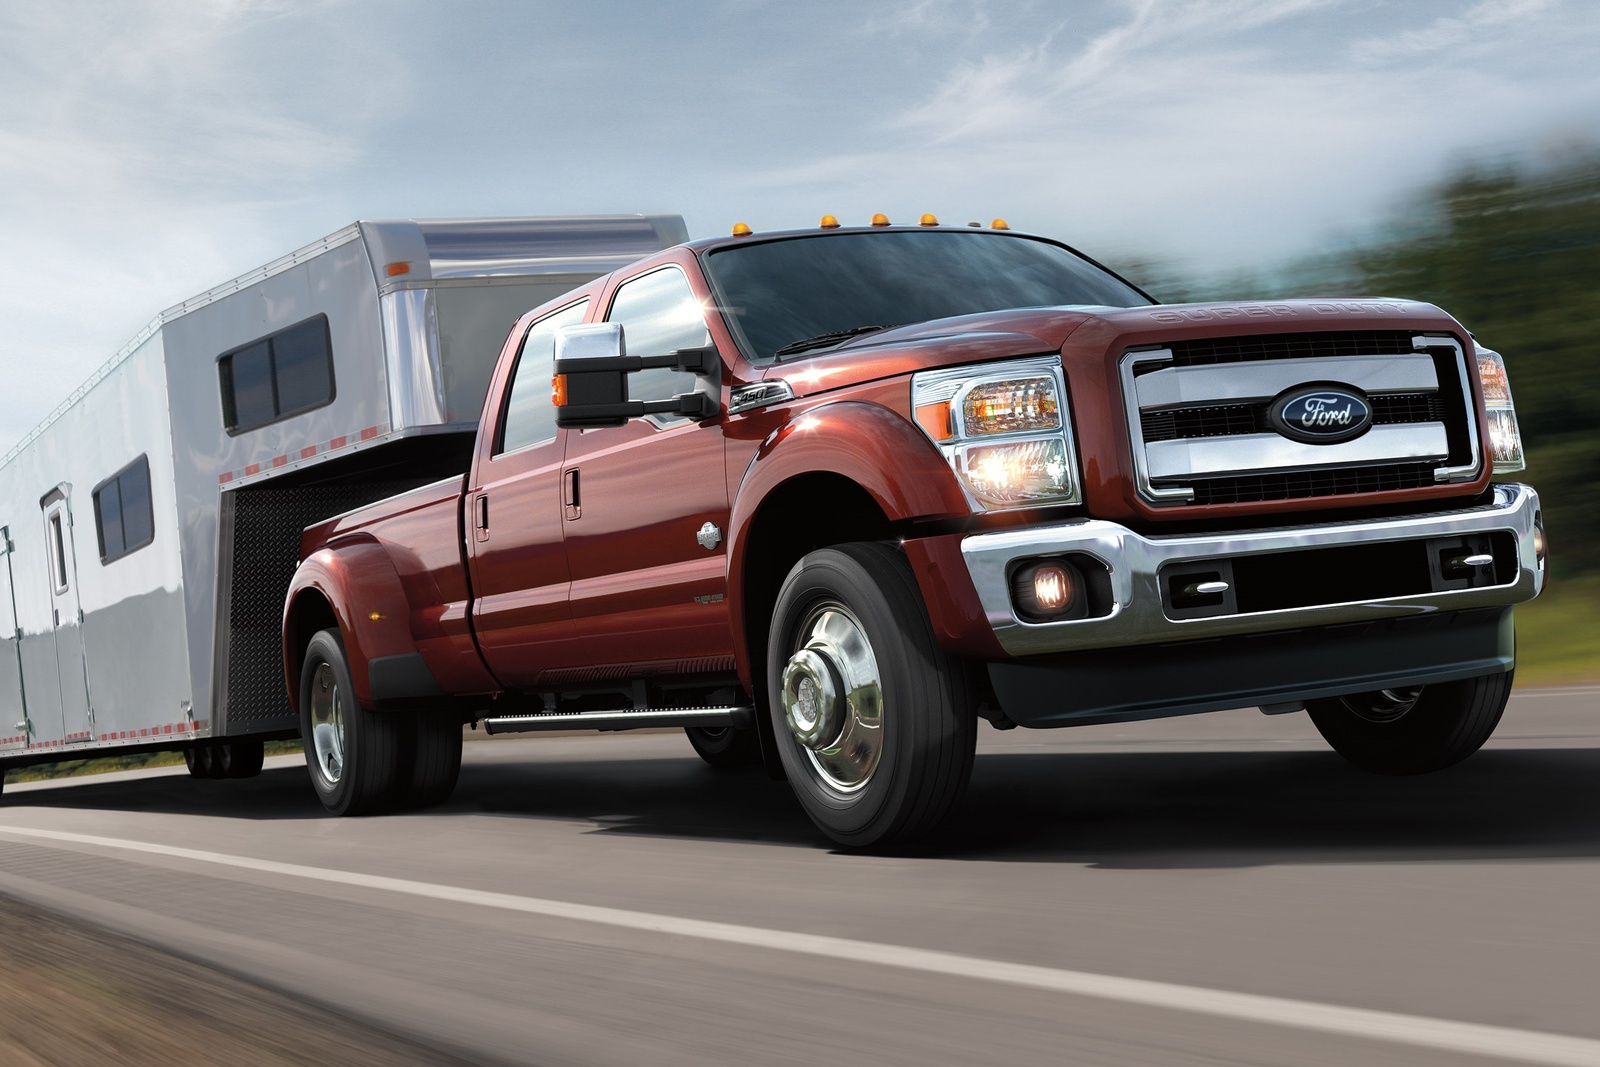 Heritage Volkswagen Subaru >> 2016 Ford F-350 Super Duty - Review - CarGurus